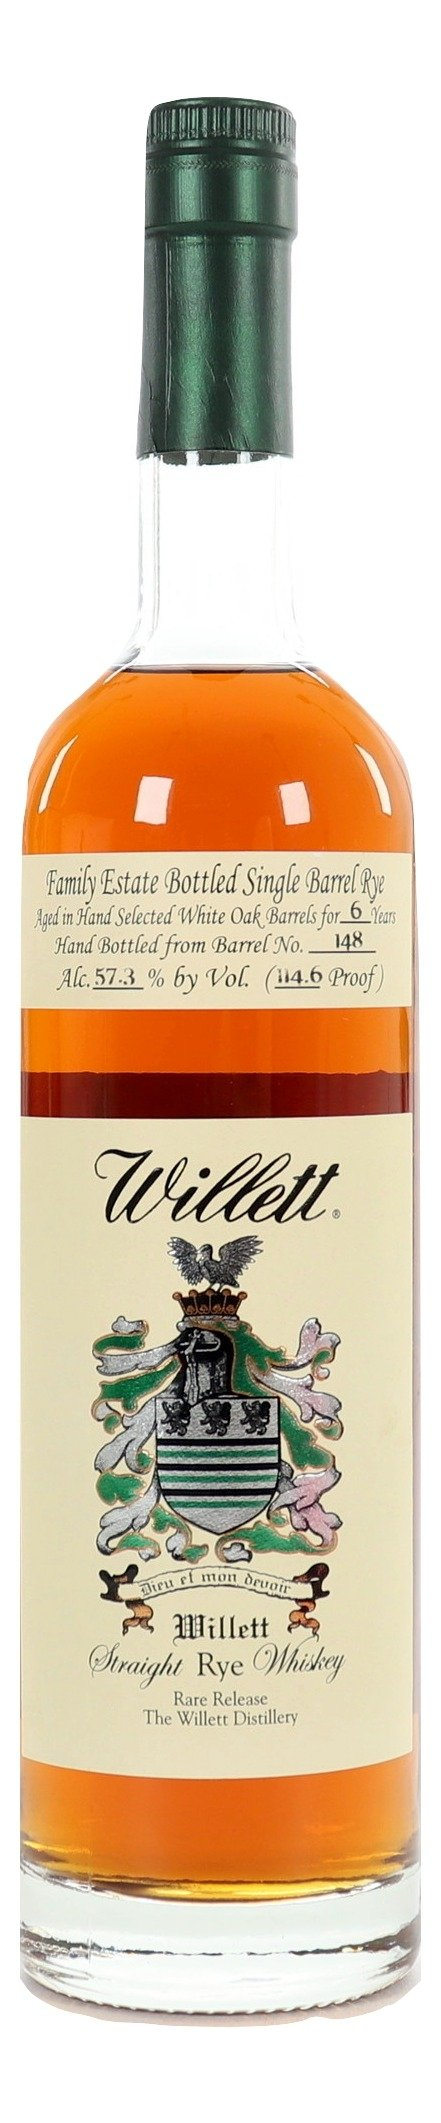 Willett 6 Year Old Family Estate Rye Barrel 148 For Sale - NativeSpiritsOnline